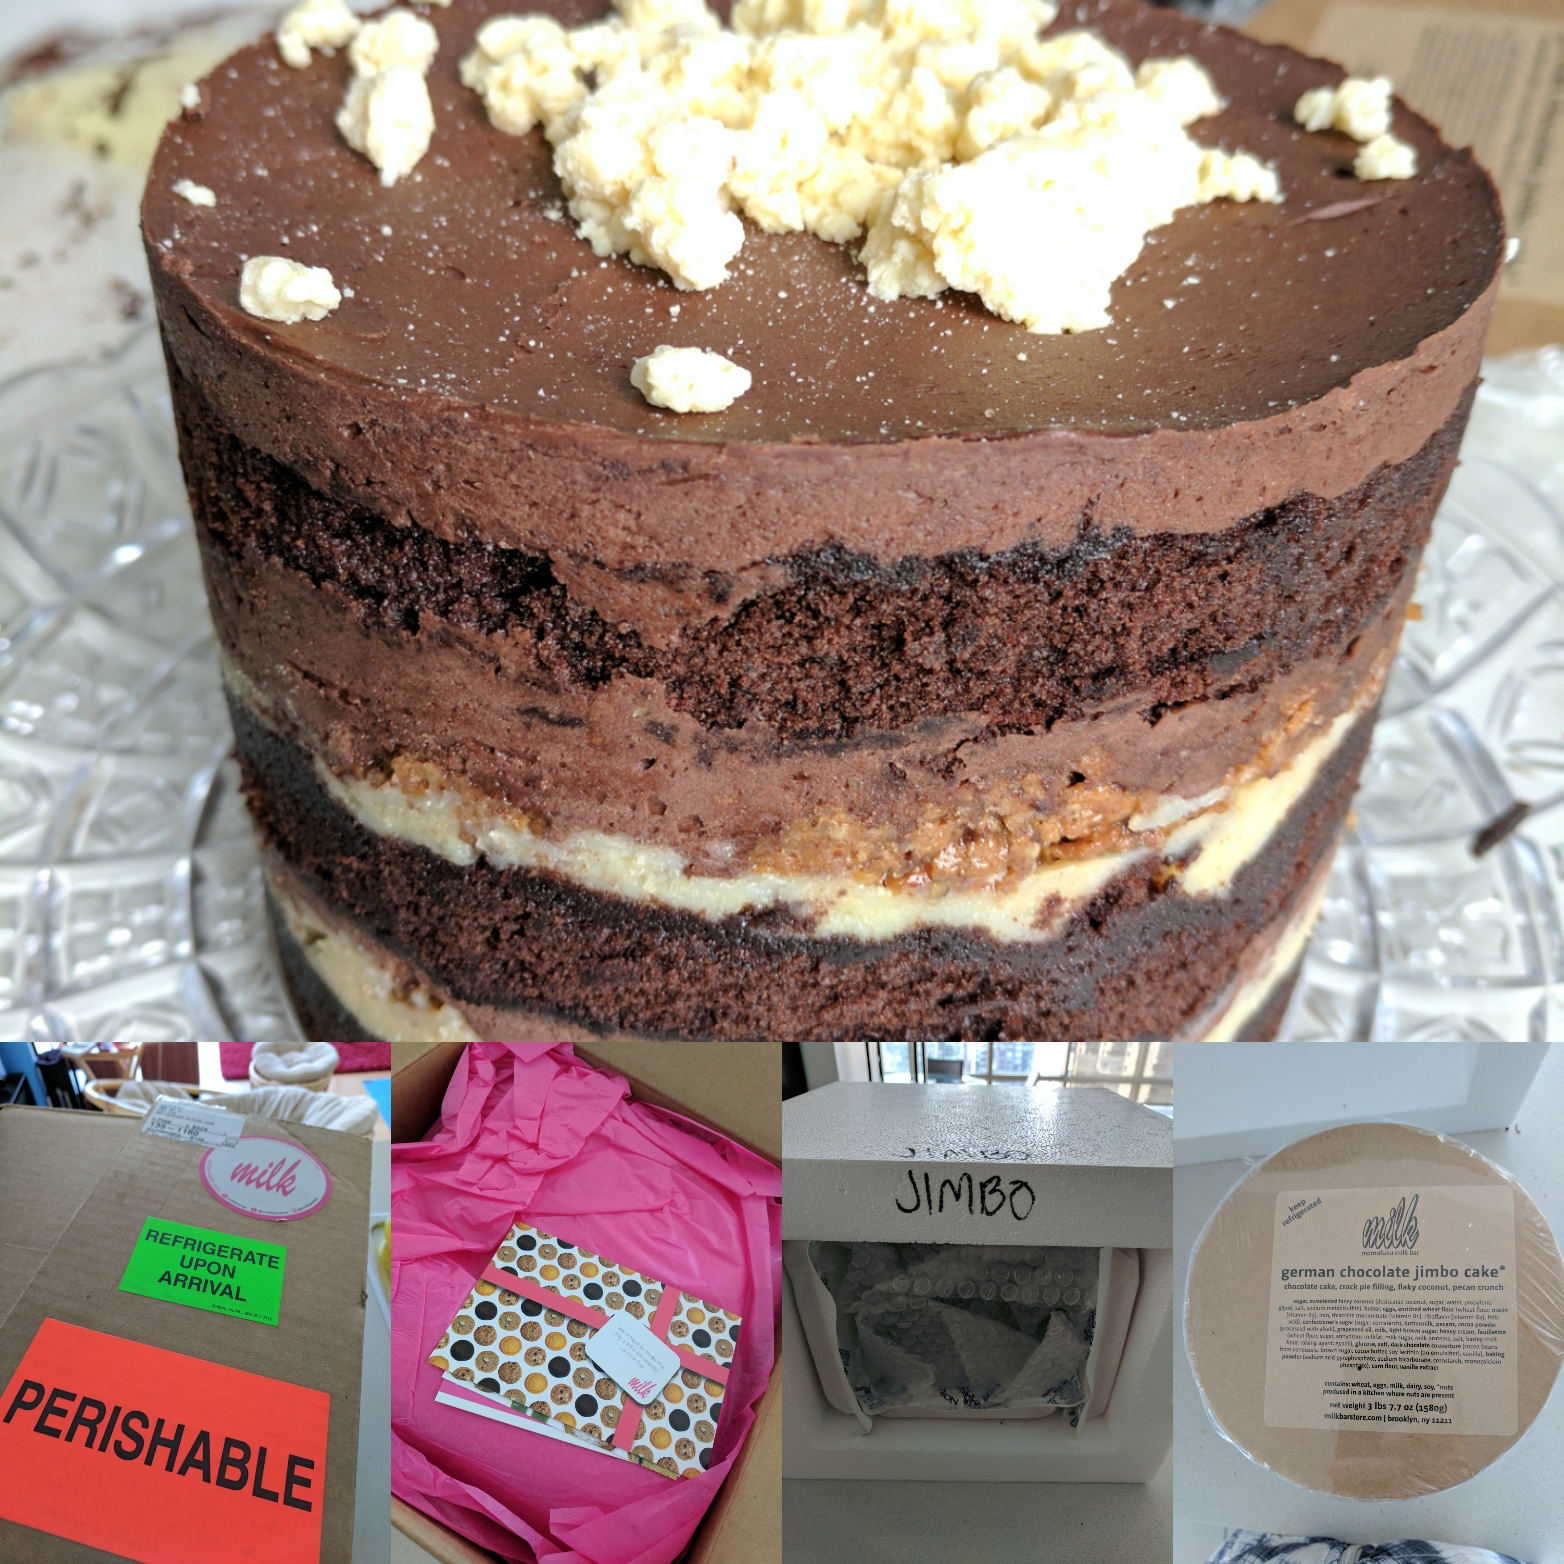 Excellent Julies Dining Club Cake Delivery From Momofuku Milk Bar Personalised Birthday Cards Veneteletsinfo